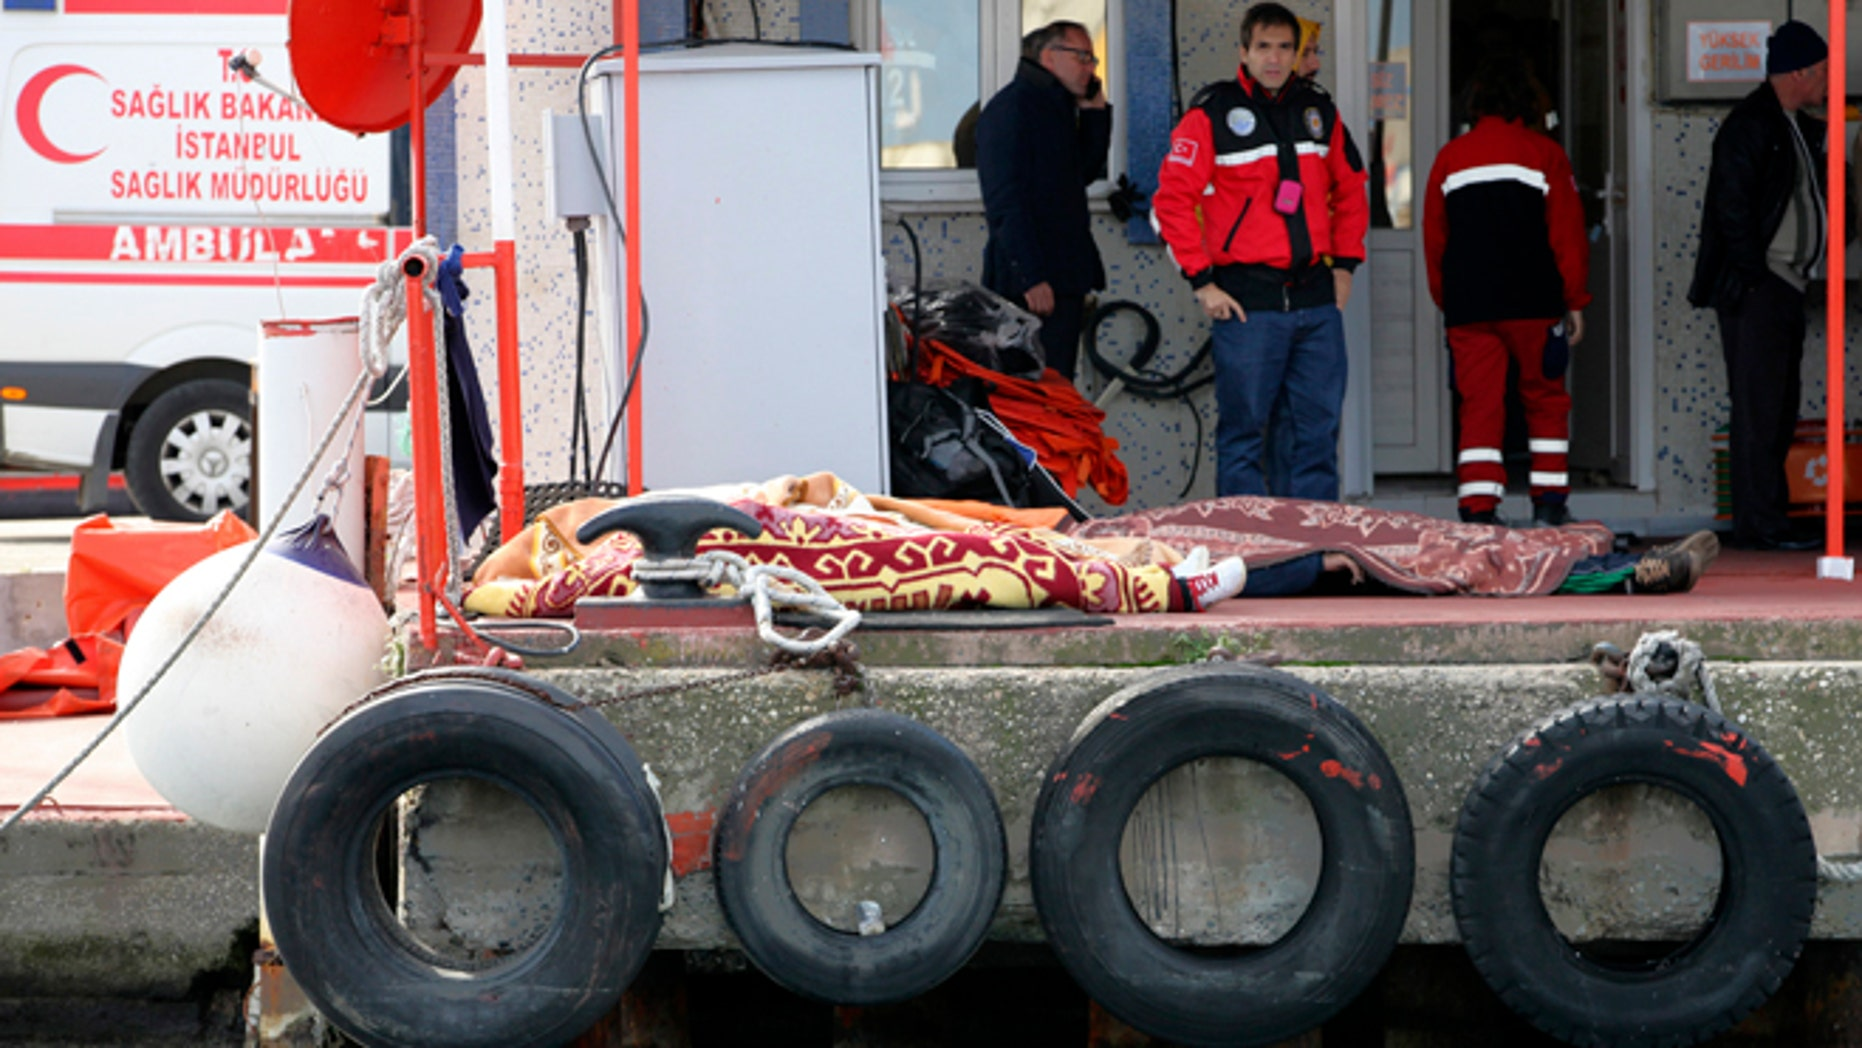 Nov. 3, 2014: Dead bodies covered with blankets lie on the ground after a boat carrying suspected migrants from Afghanistan and Syria sank just north of the Bosphorus Strait off the coast of Istanbul, Turkey, leaving at least 24 people dead and several people missing. Seven people were rescued, Turkish authorities said.